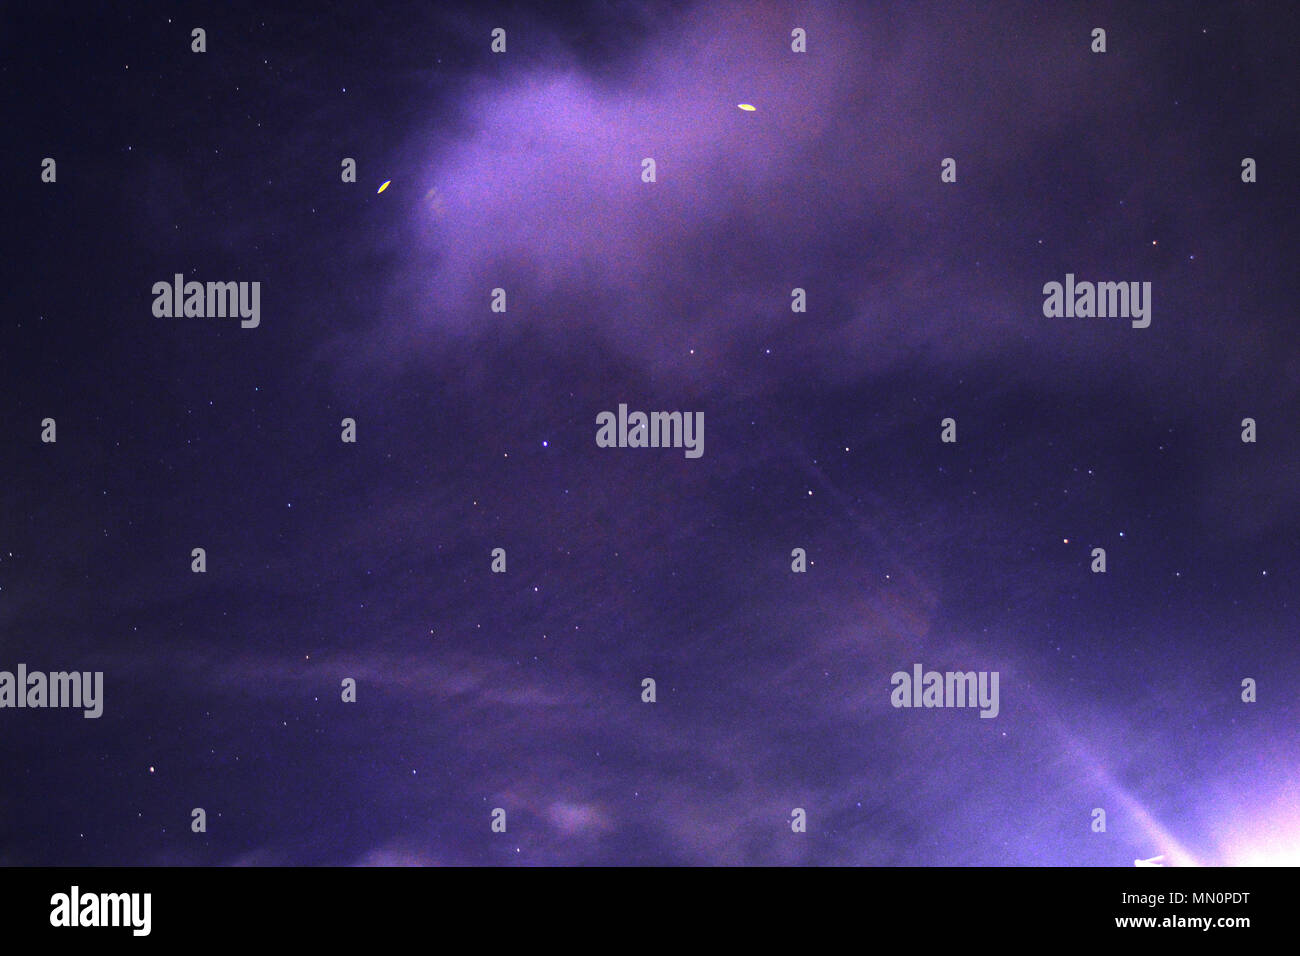 Astrophotography - Stock Image